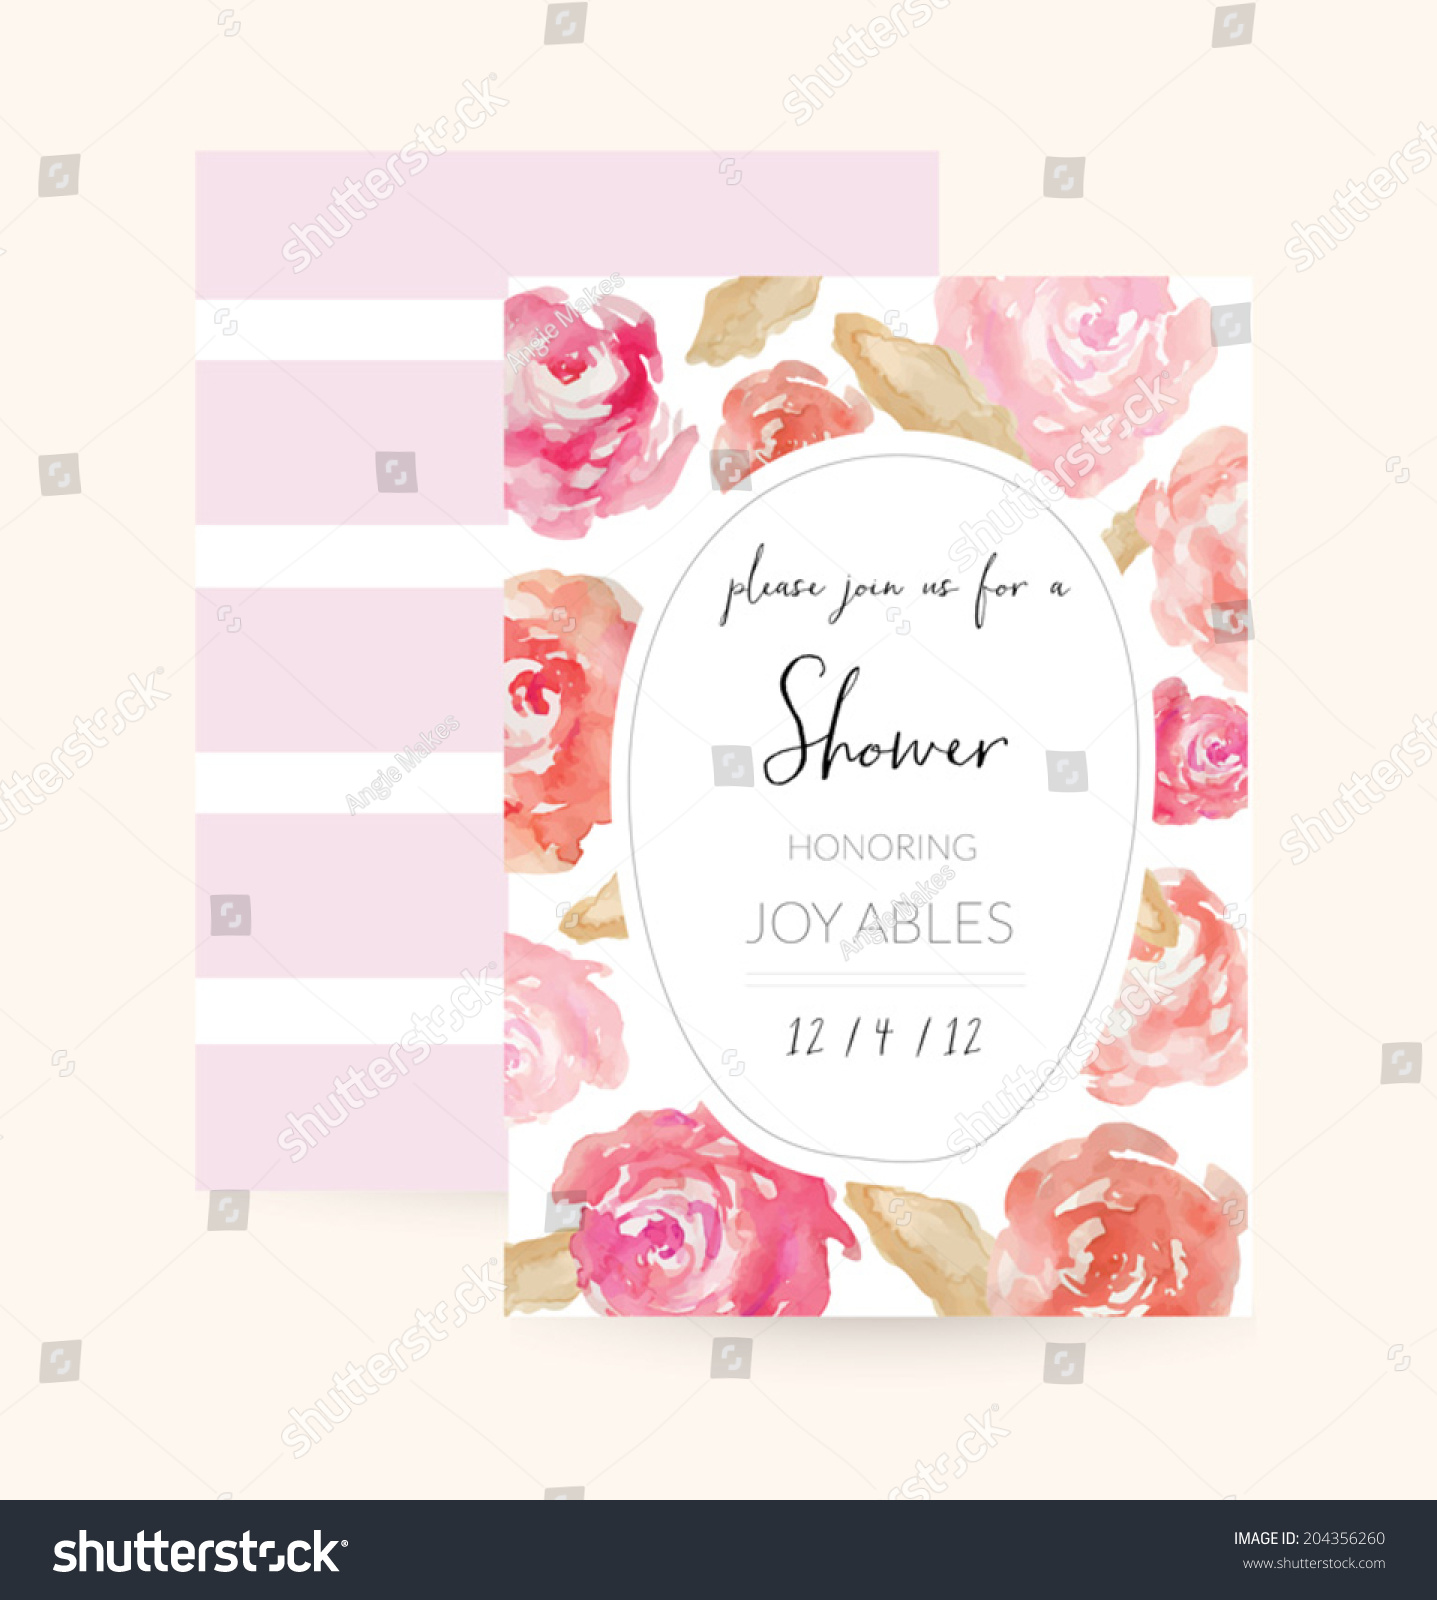 wedding shower invitation template